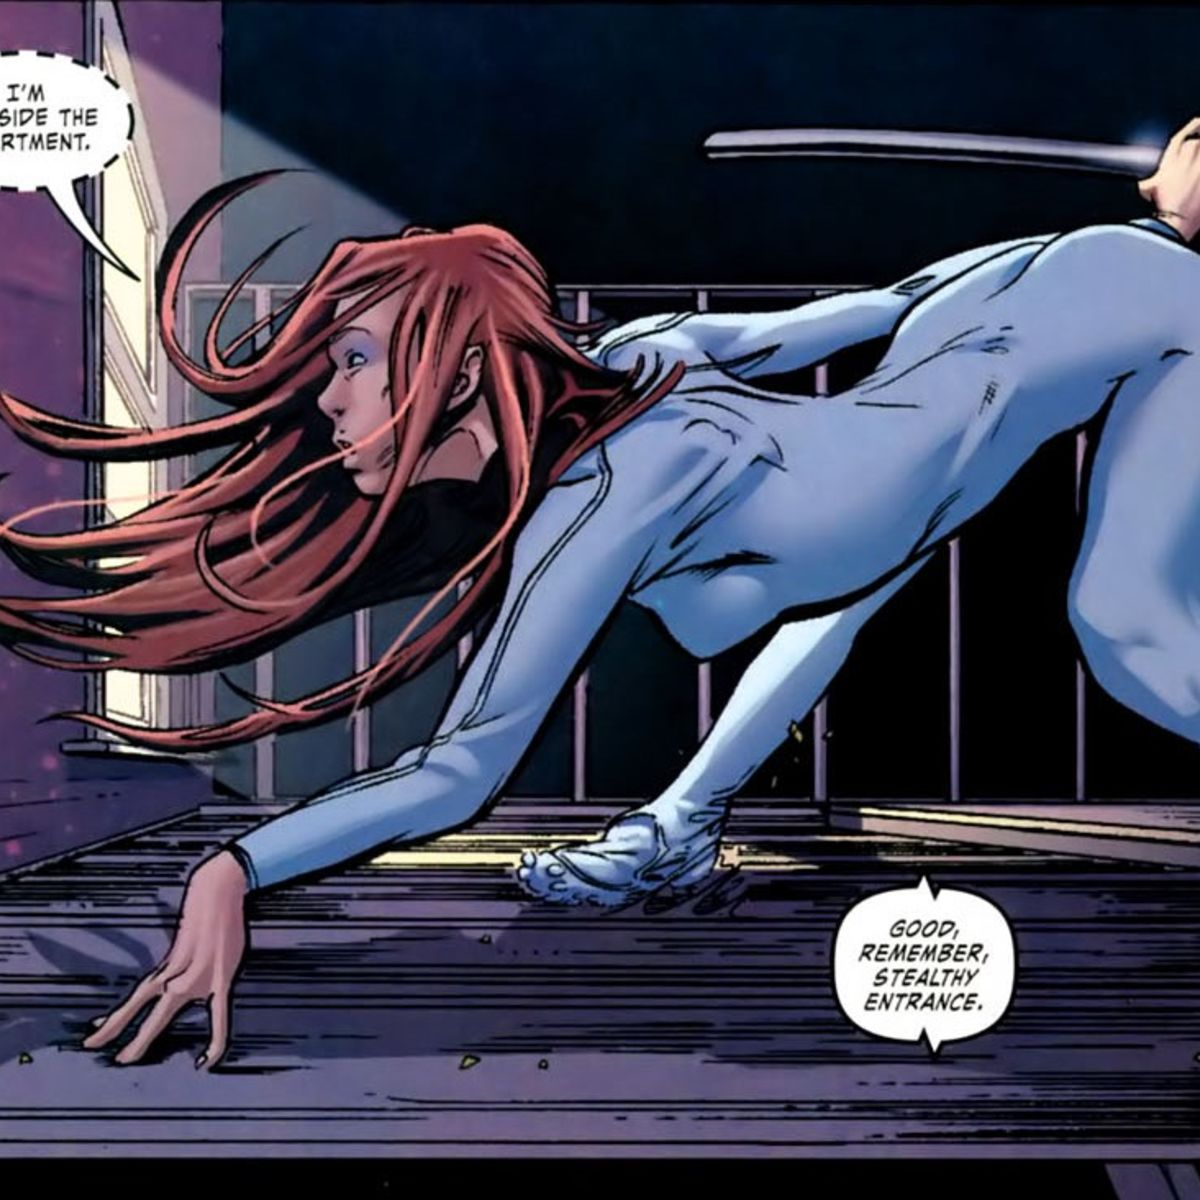 Colleen-Wing-comics_1.jpg